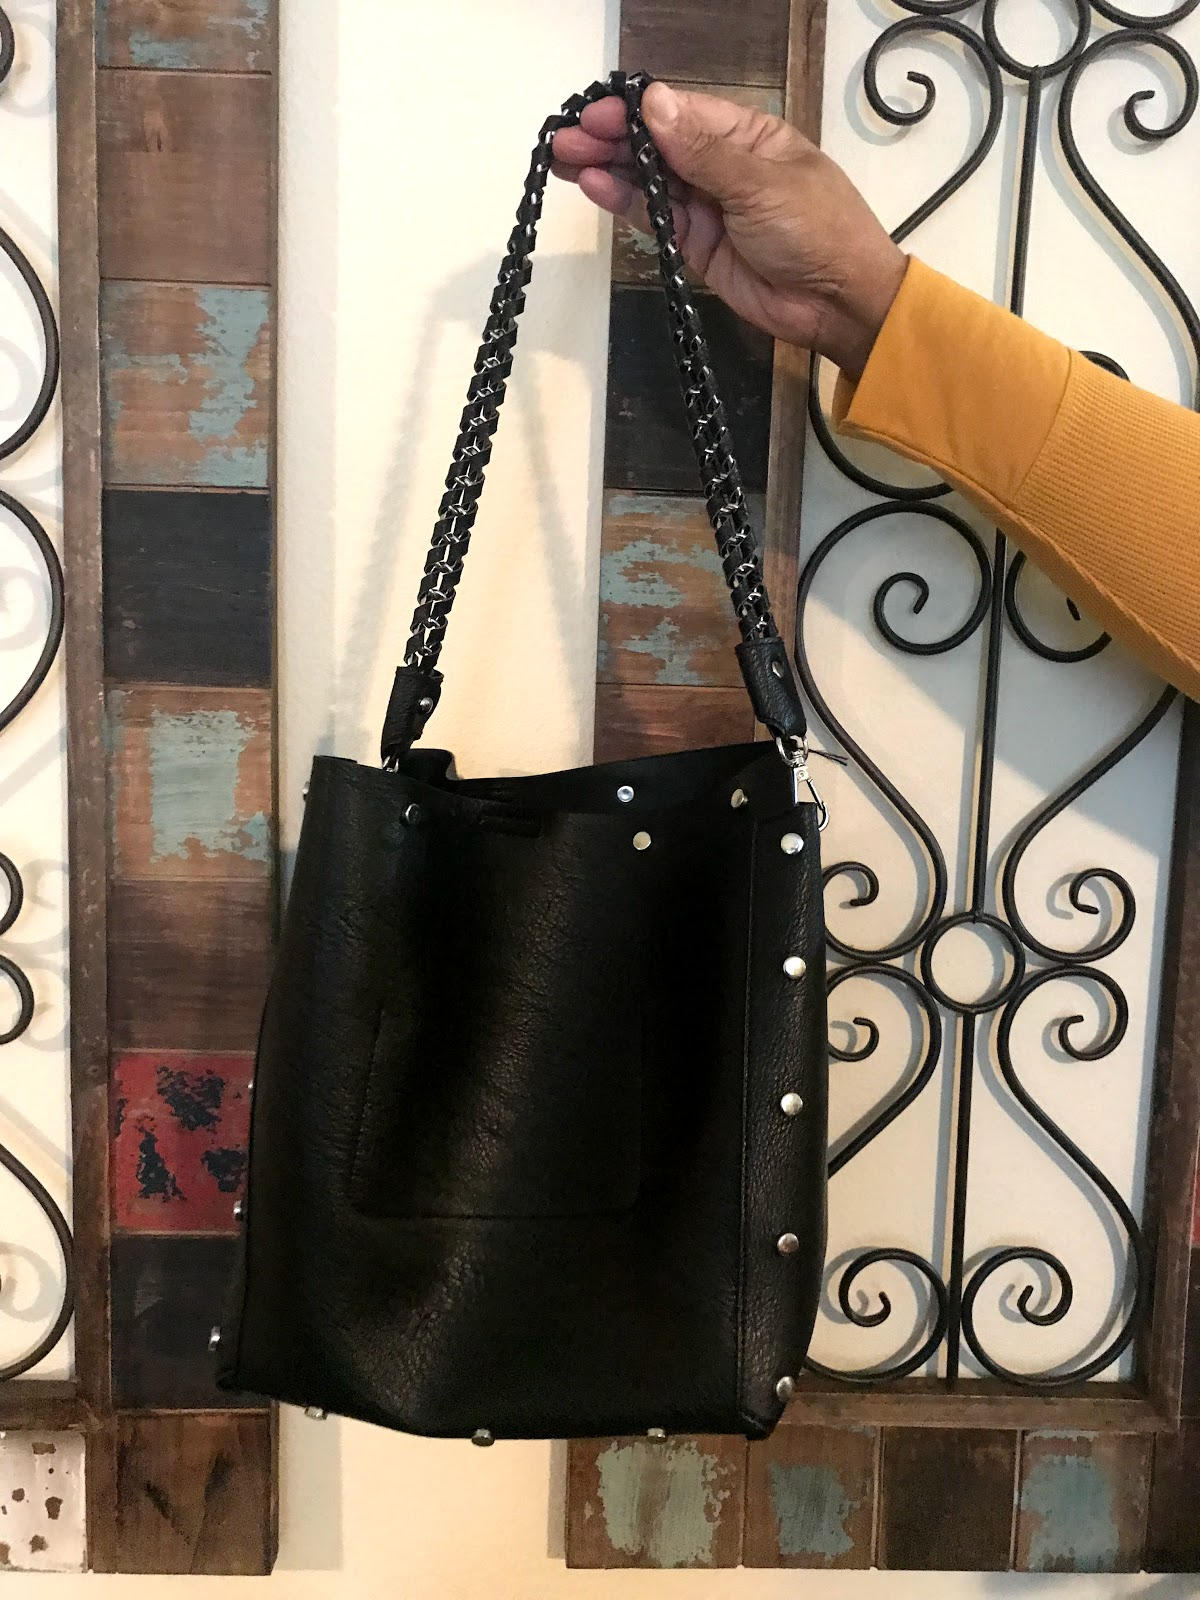 Image: Woman holding handbag that may be donated as part of decluttering and organizing her things